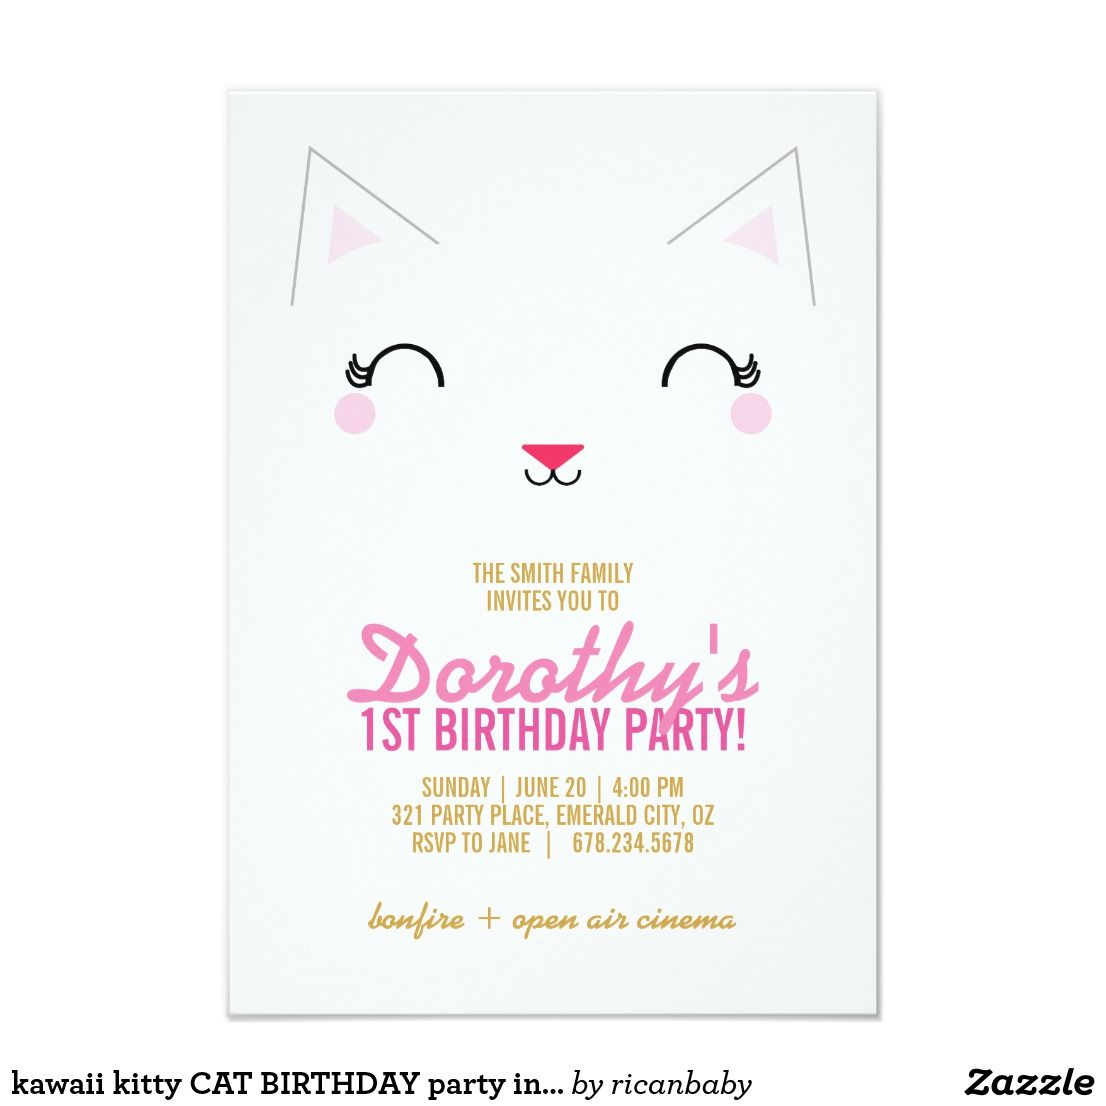 kawaii kitty CAT BIRTHDAY party invitation This adorable kitty ...